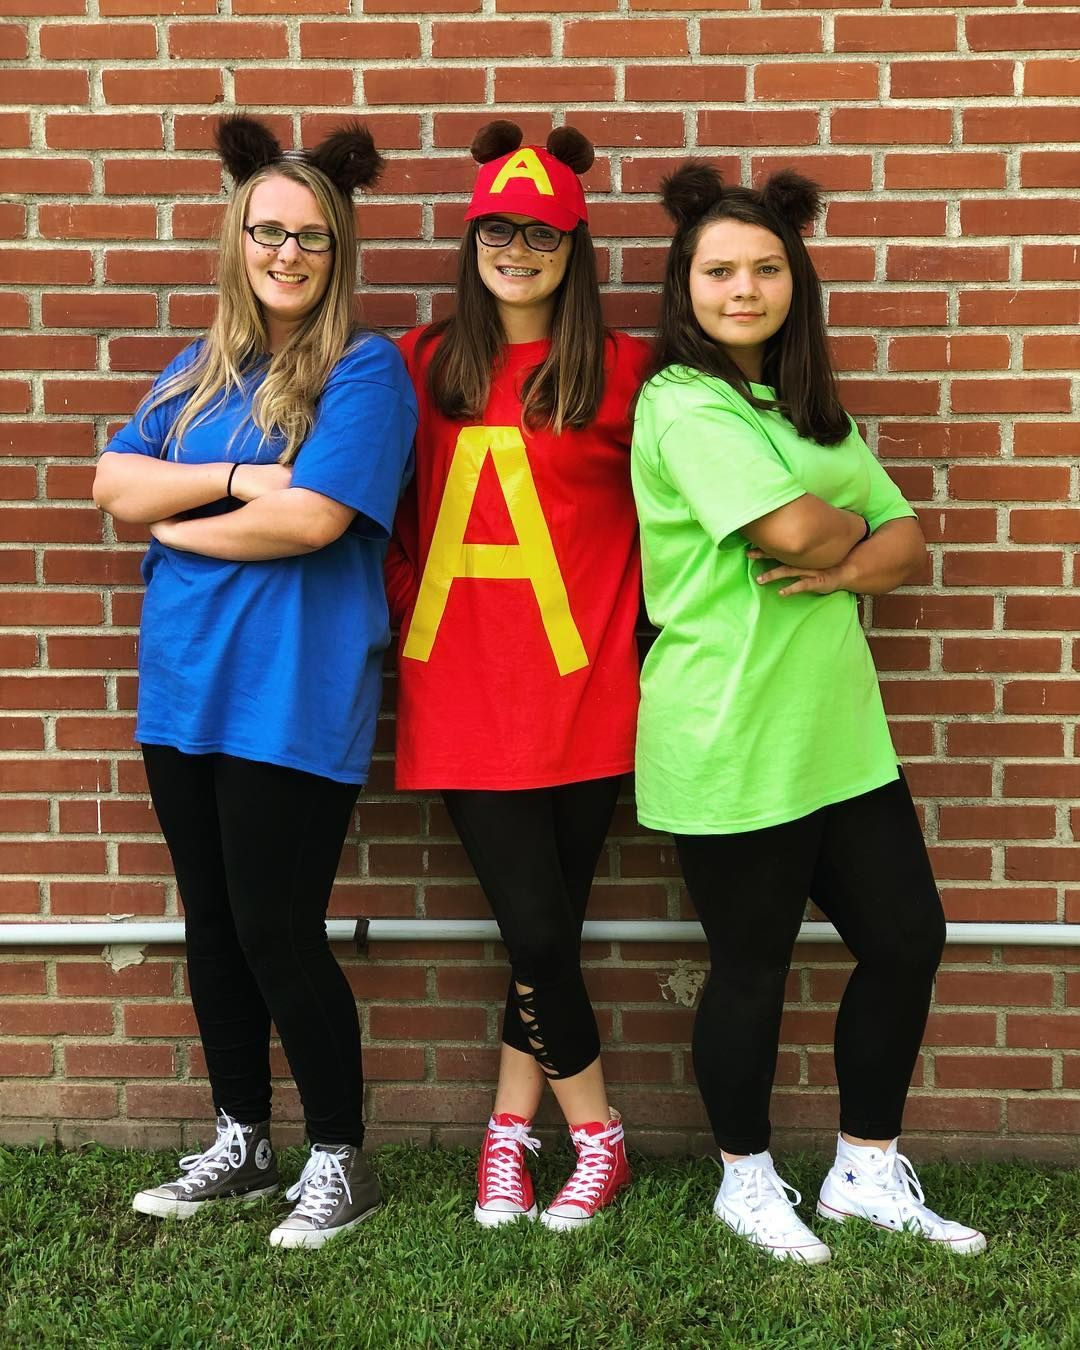 Diy Alvin And The Chipmunks Halloween Costume Idea Maskerix Com Trendy Halloween Costumes Partner Halloween Costumes Alvin And The Chipmunks